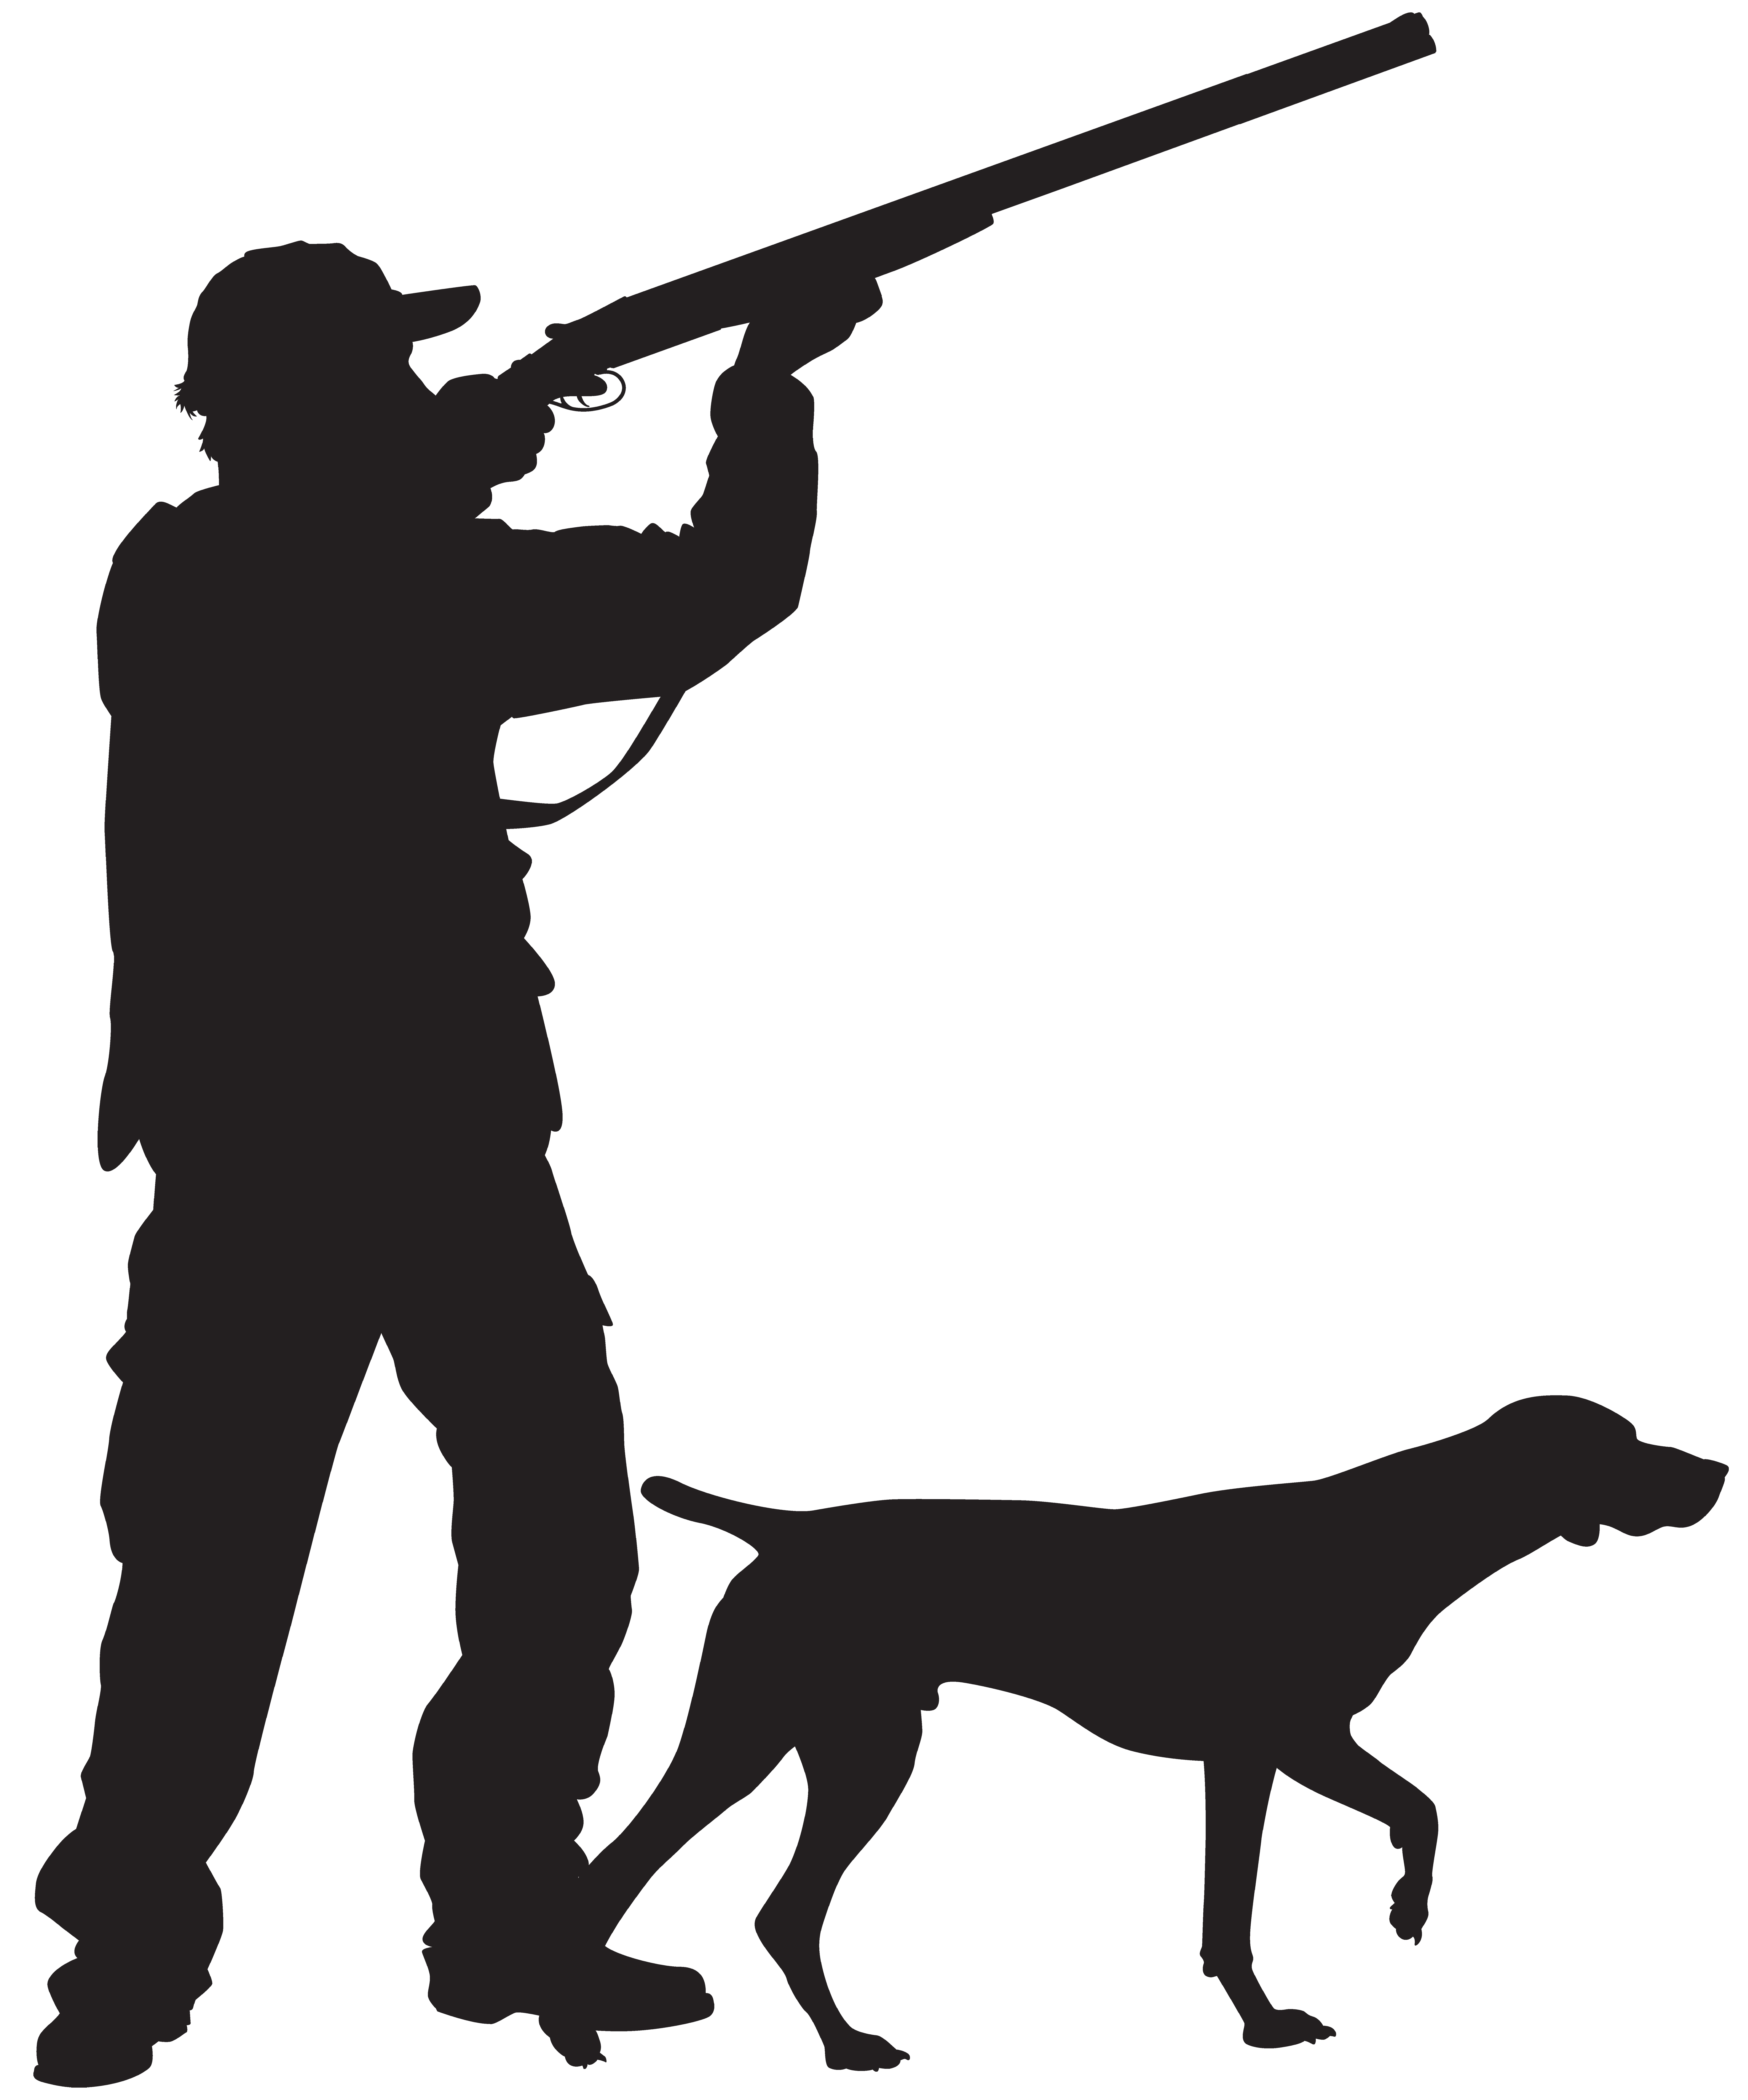 With Hunter Silhouette Dog Hunting Png Free Photo Dog Silhouette Silhouette Hunting Art